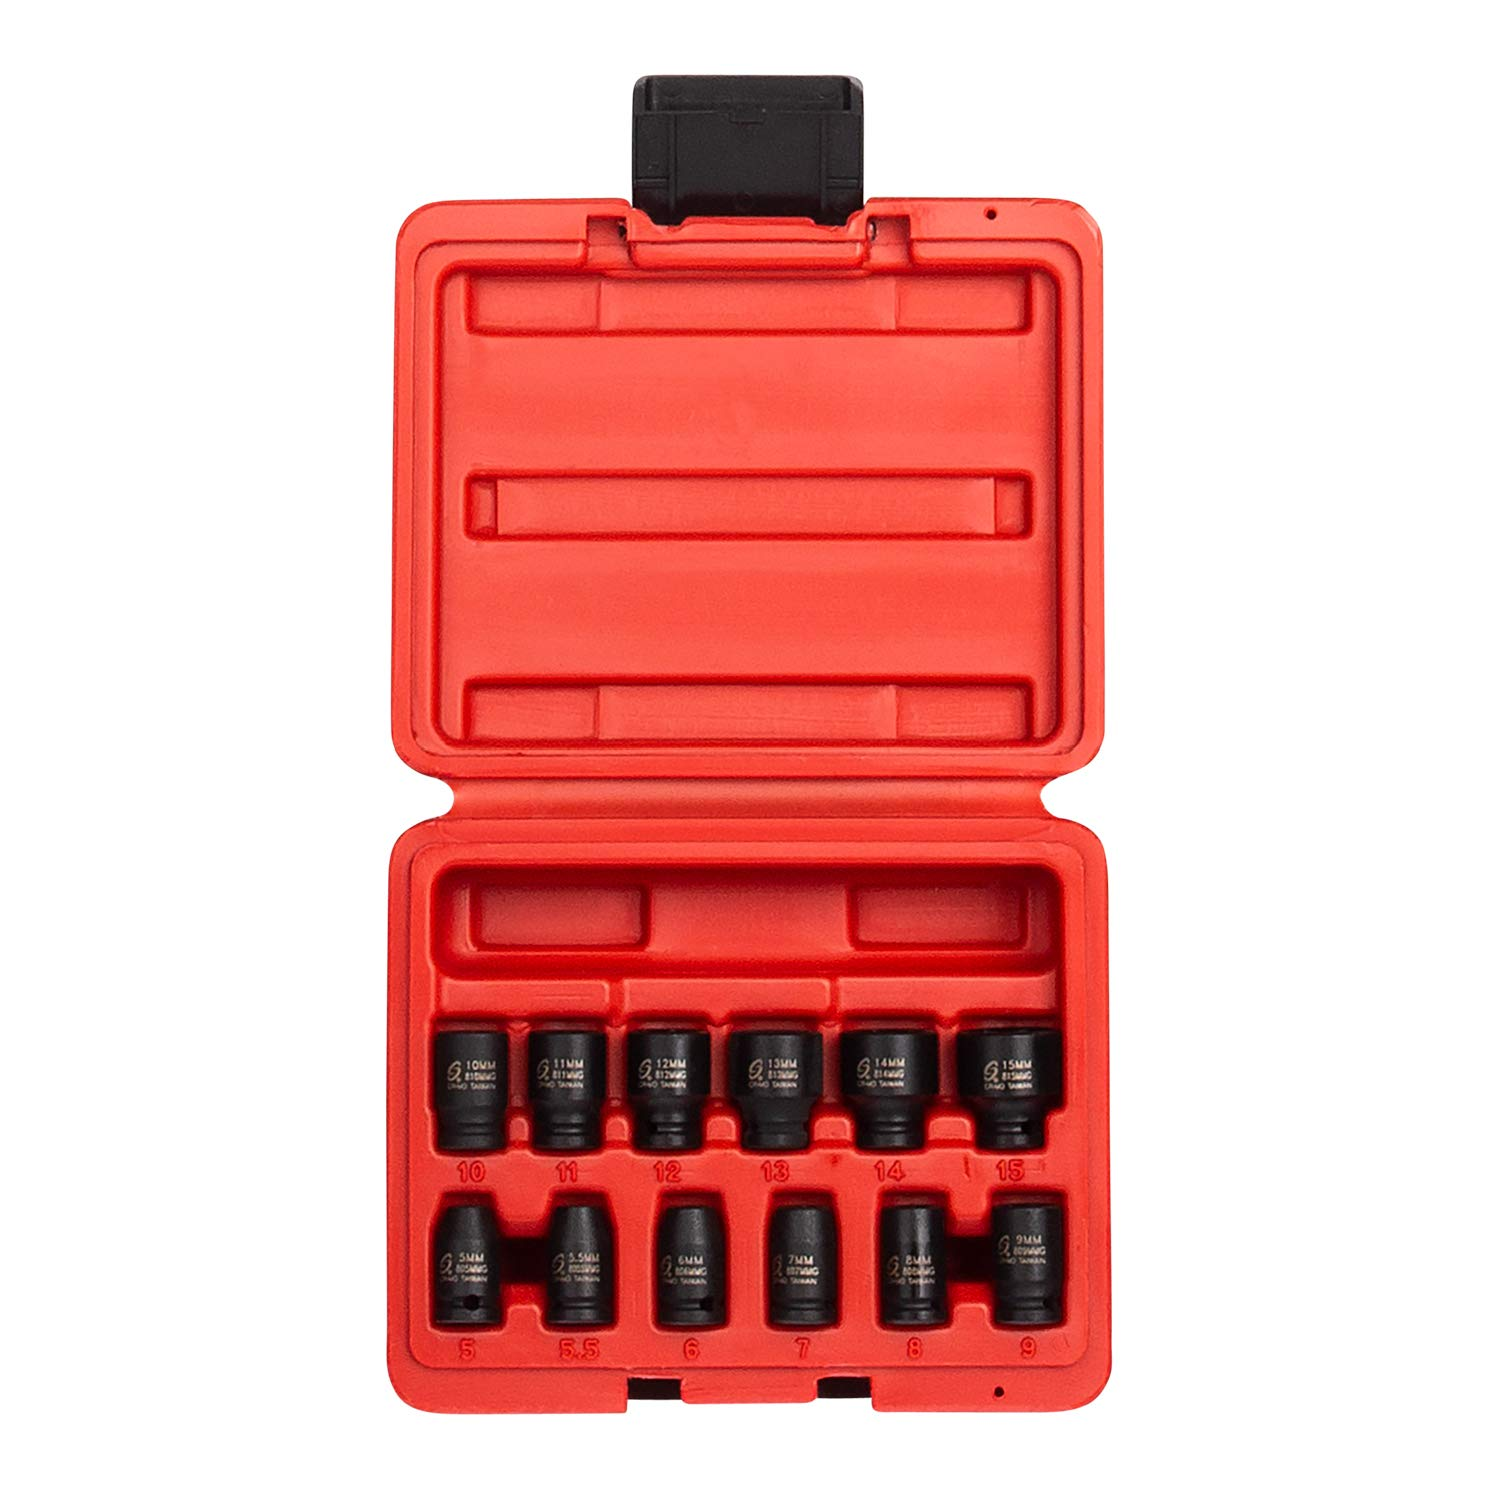 Sunex 1822, 1/4 Inch Drive Magnetic Impact Socket Set, 12-Piece, Metric, 5mm-15mm, Cr-Mo Alloy Steel, Radius Corner Design, Dual Size Markings, Heavy Duty Storage Case